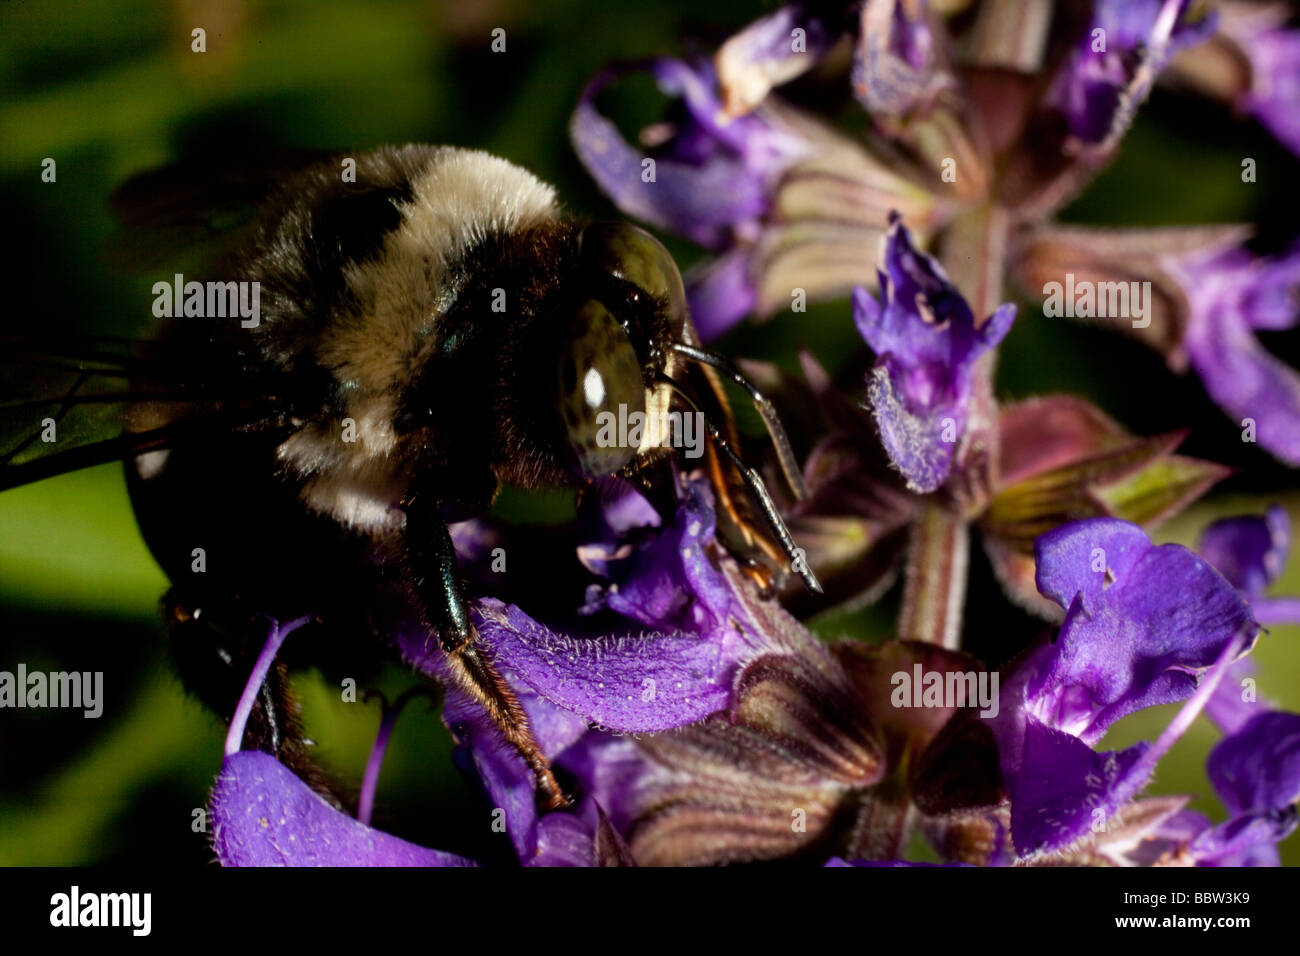 Bee Gathering Pollen On Silvia Flowers   Stock Image